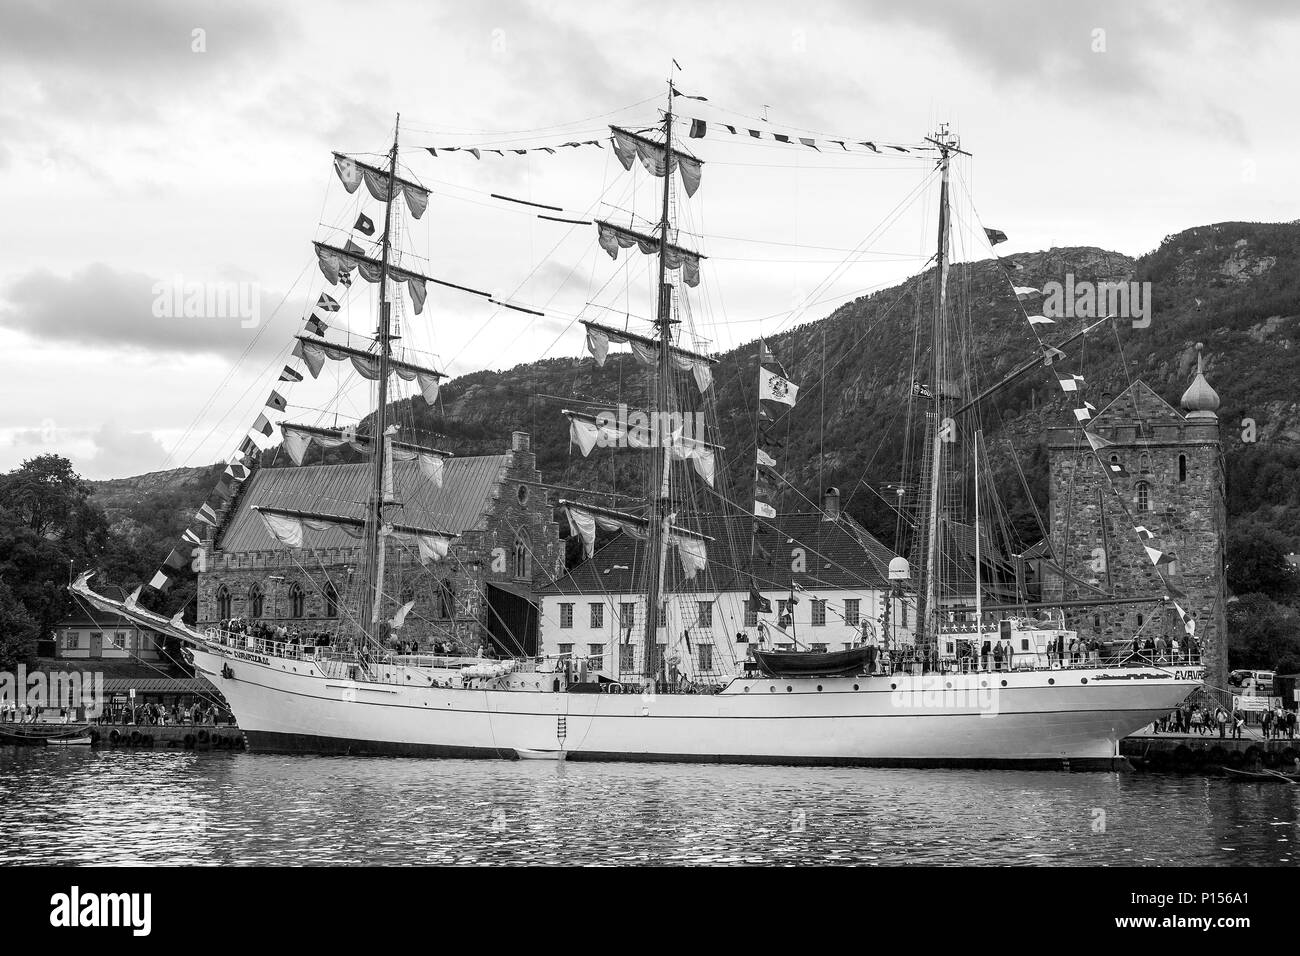 Tall Ships Race 2008. Bergen, Norway - August 2008. The Mexican Cuauhtemoc (three masted barque), in front of Haakonshallen - Stock Image